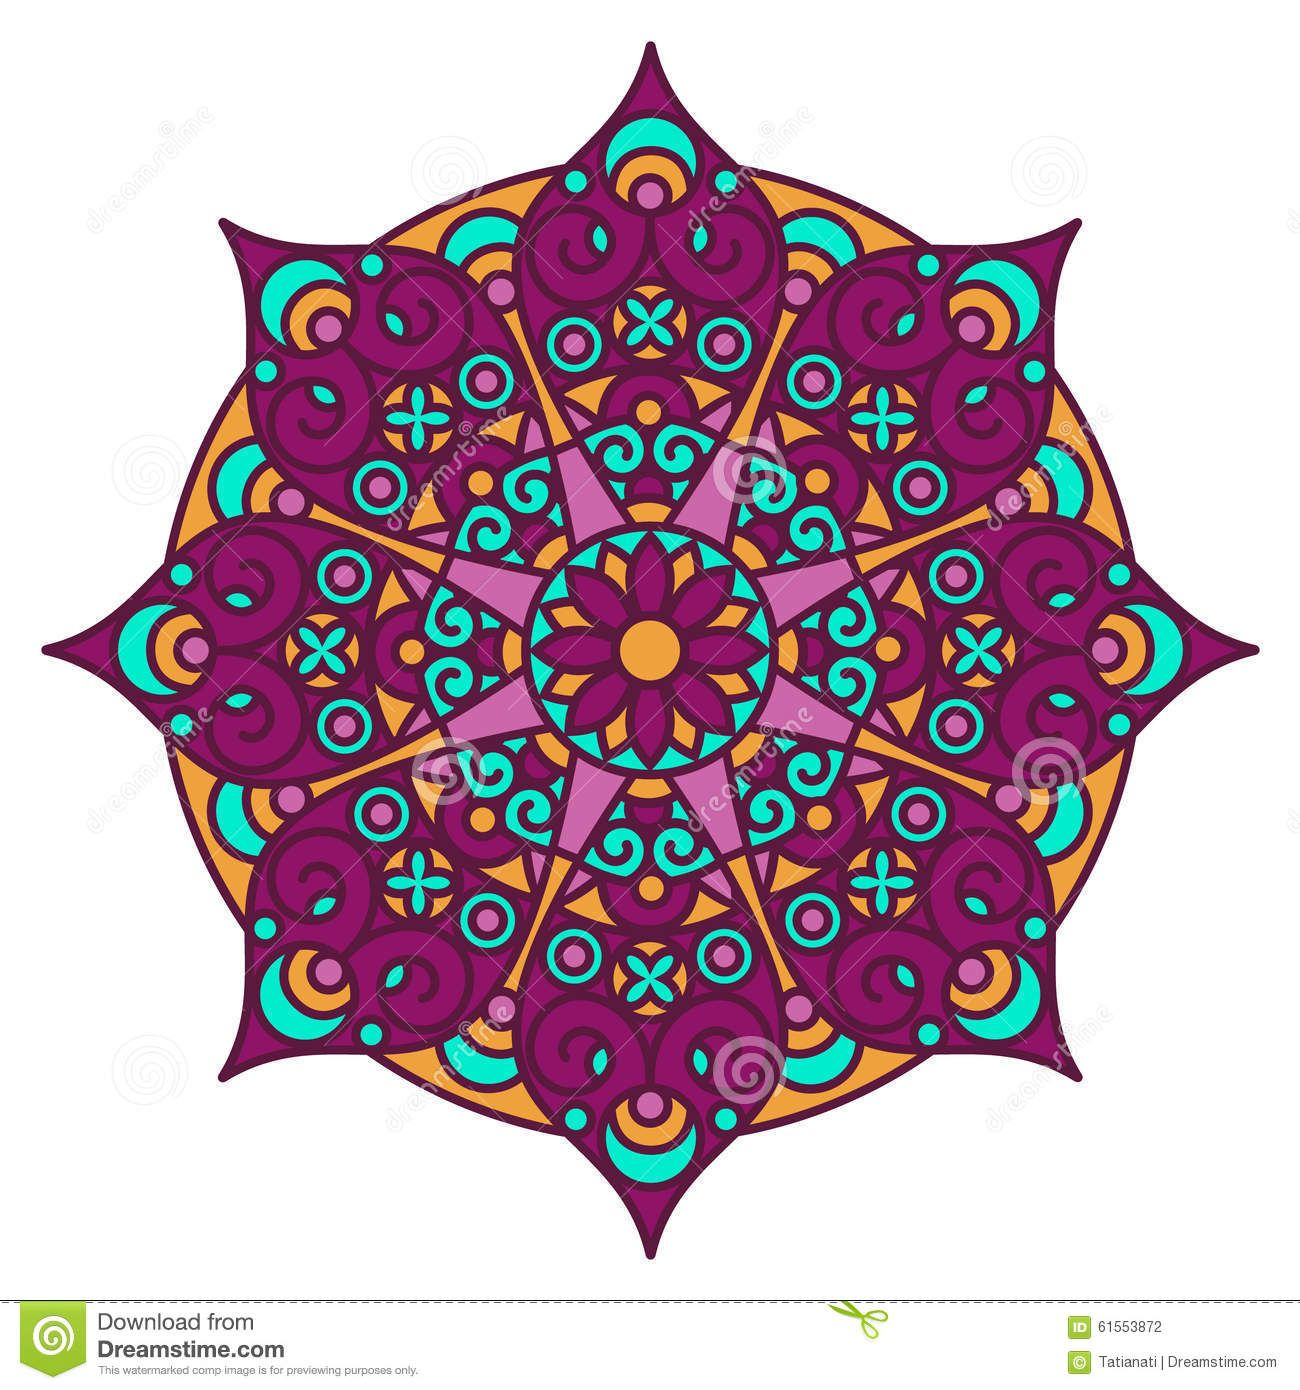 - Mandala Color Mandala Coloring, Mandala, Tree Tattoo